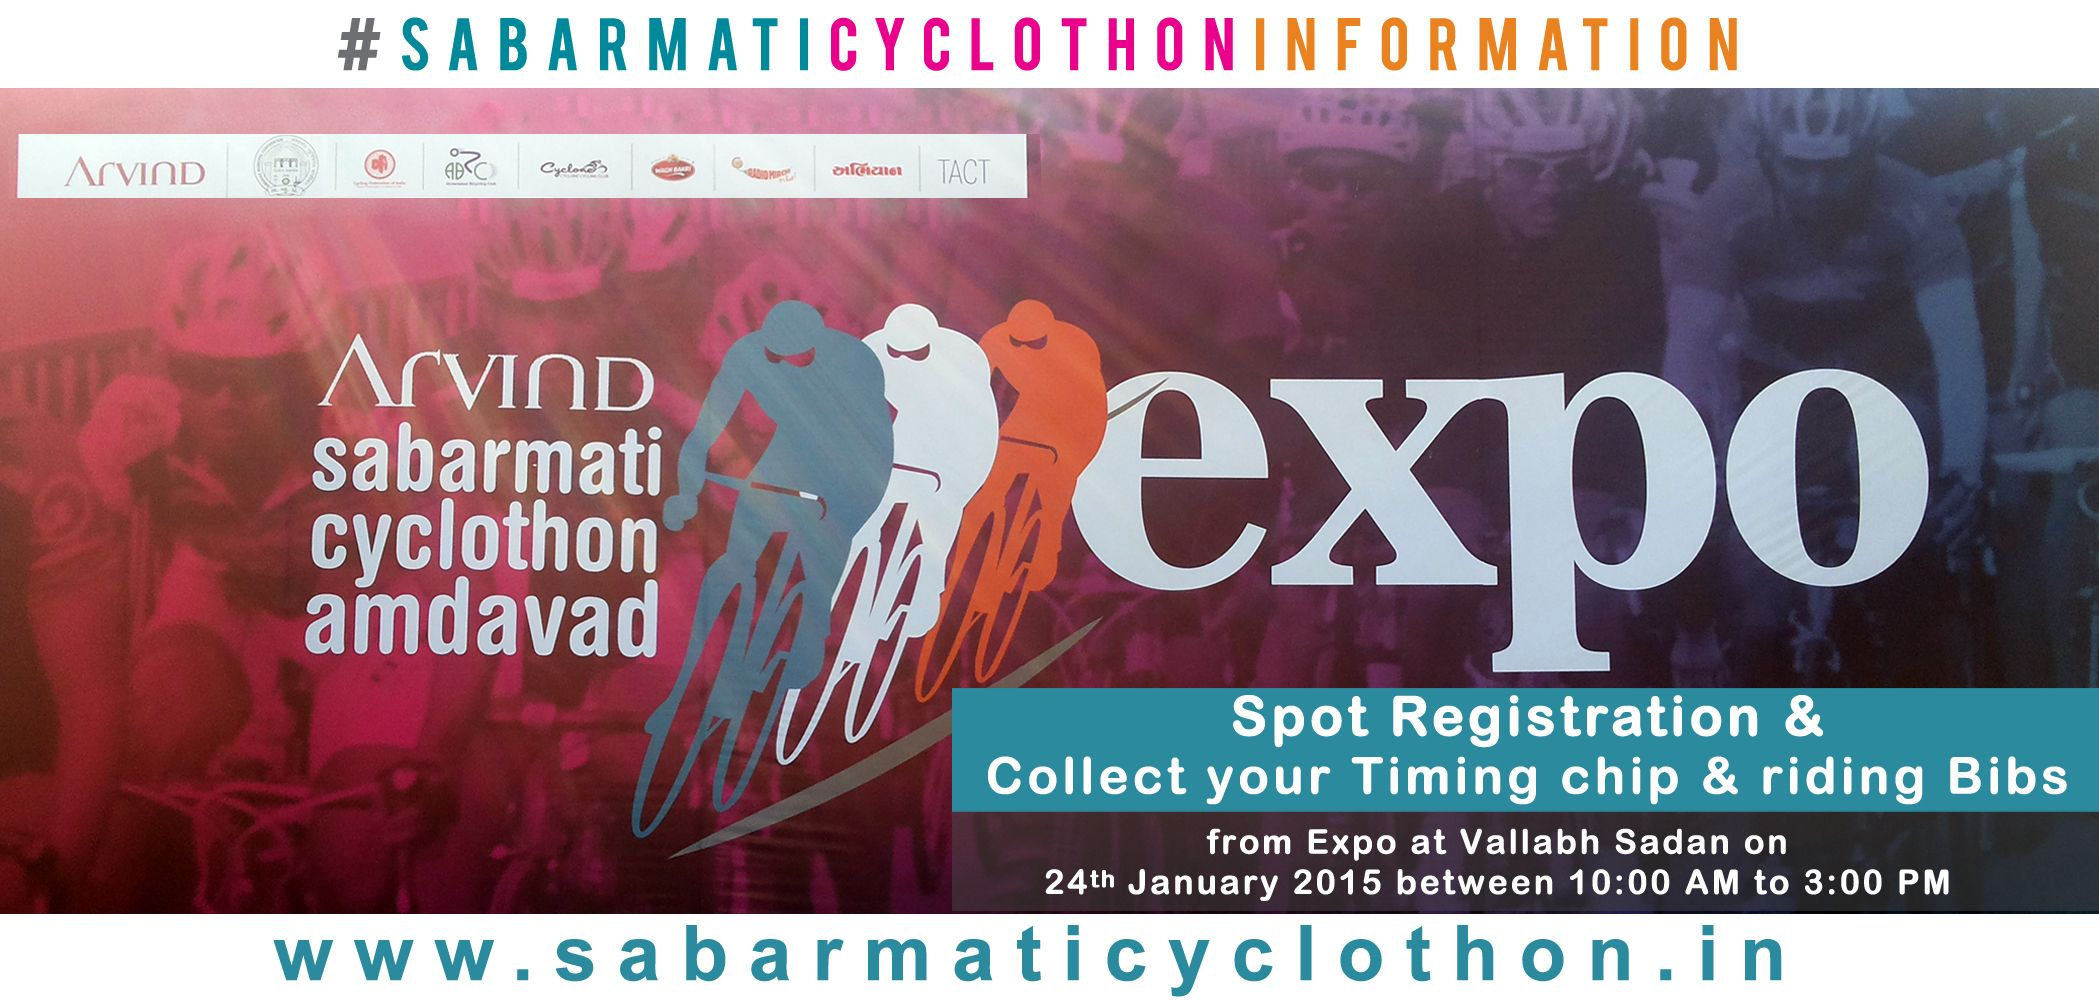 Spot Registration for dream ride (16 Kms) only & Collect Your Timing chip & riding Bibs from Expo at Vallabh Sadan on 24th January 2015 between 10:00 AM to 3:00 PM #arvindsabarmaticyclothon #cyclothon #arvind #sabarmati